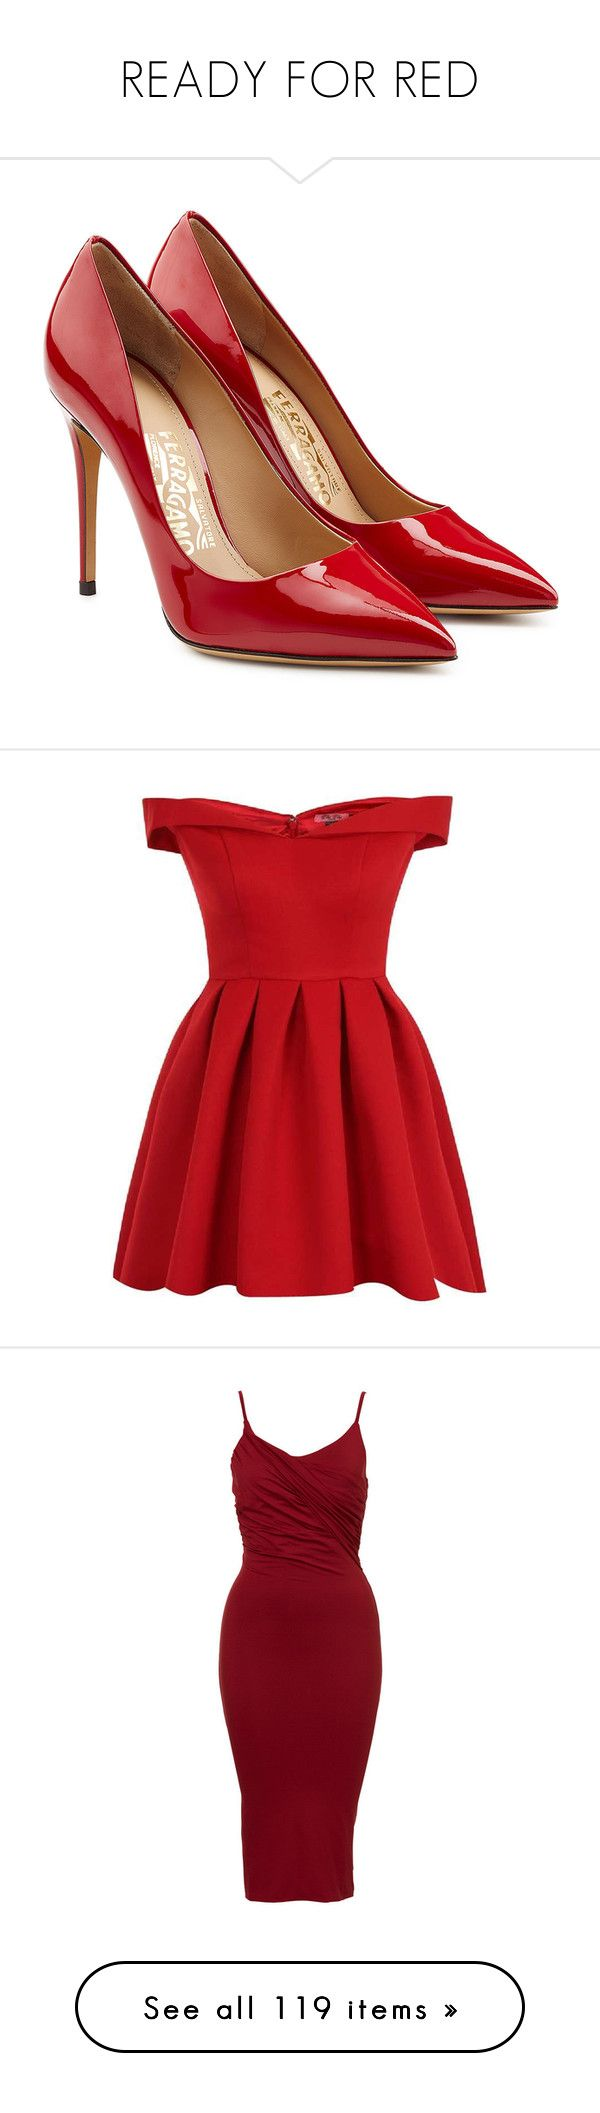 """READY FOR RED"" by lullilia ❤ liked on Polyvore featuring shoes, pumps, heels, red, scarpe, red stiletto pumps, patent leather pumps, pointed toe shoes, red shoes and red stilettos"